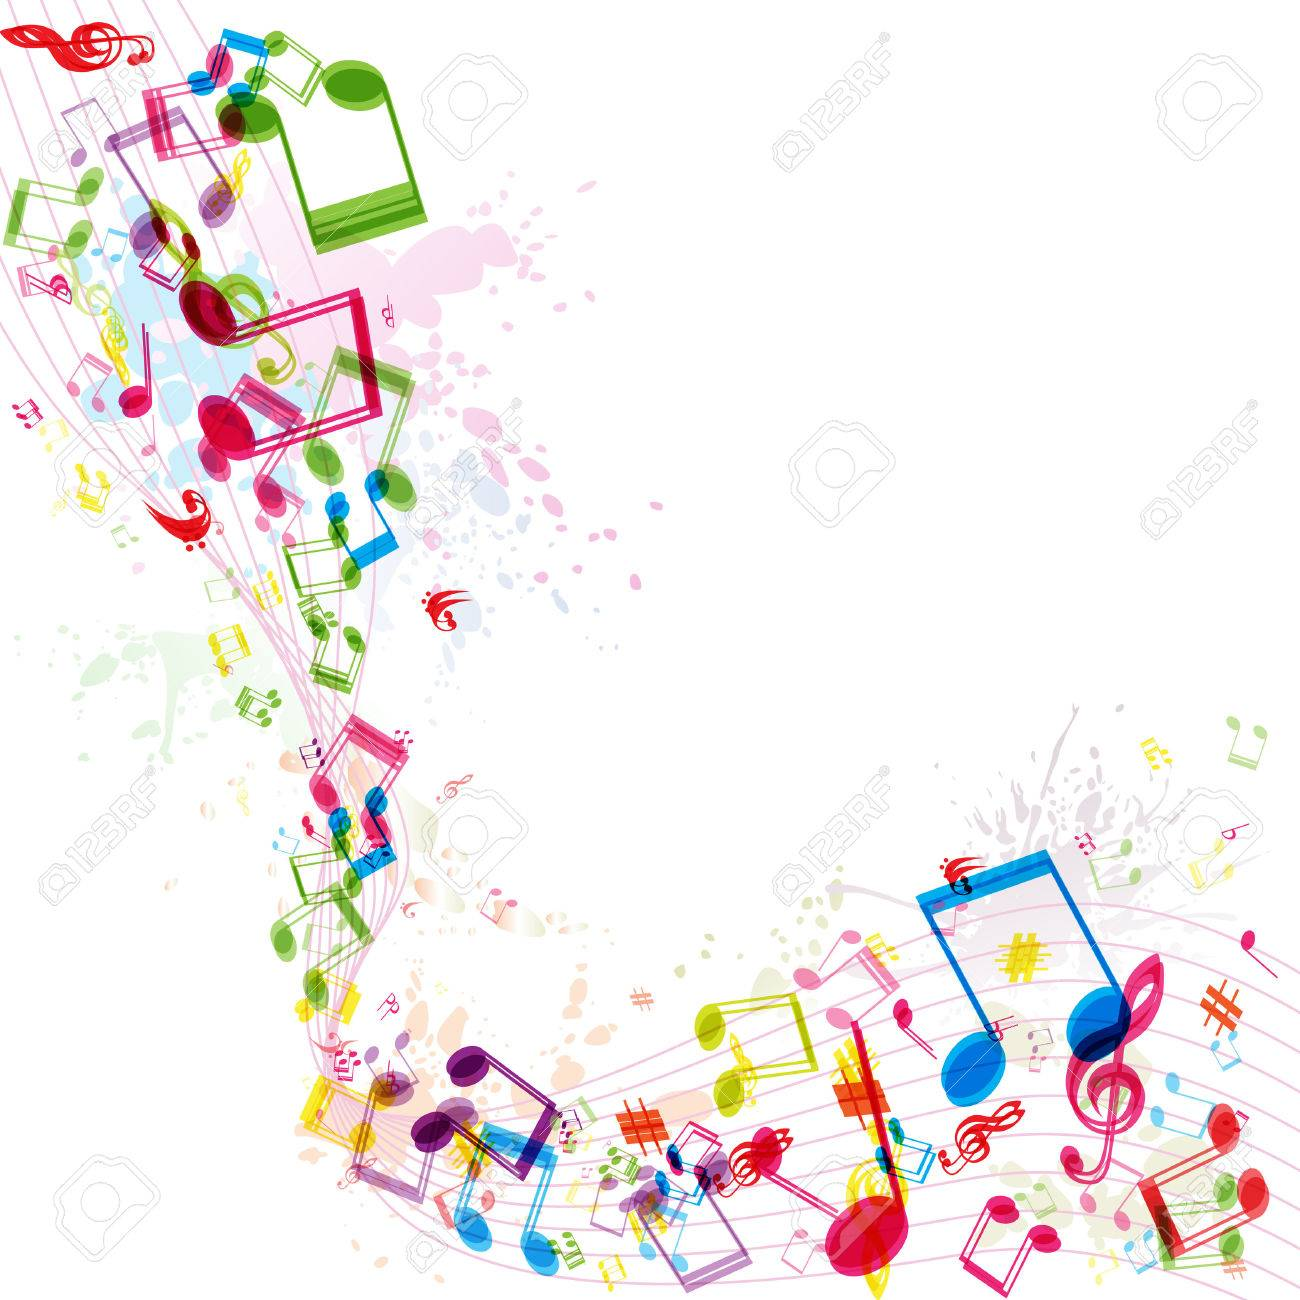 Abstract music background, illustration - 53563966